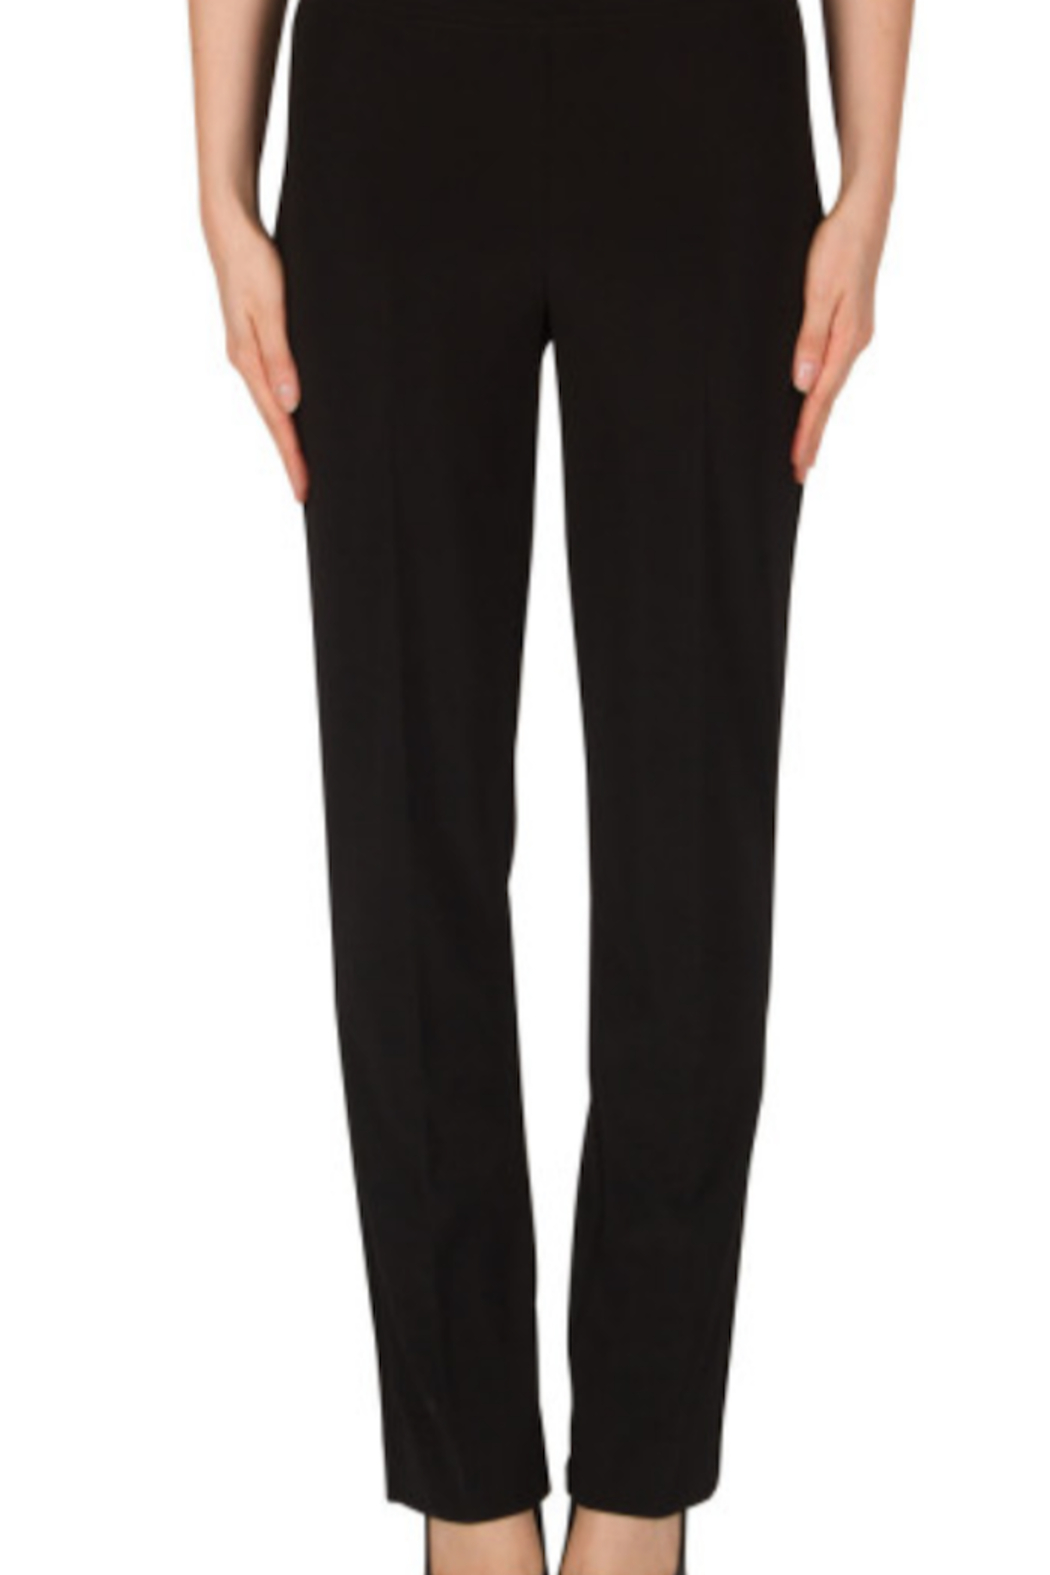 Joseph Ribkoff  The Essential Pant, Black, Navy, & White - Main Image